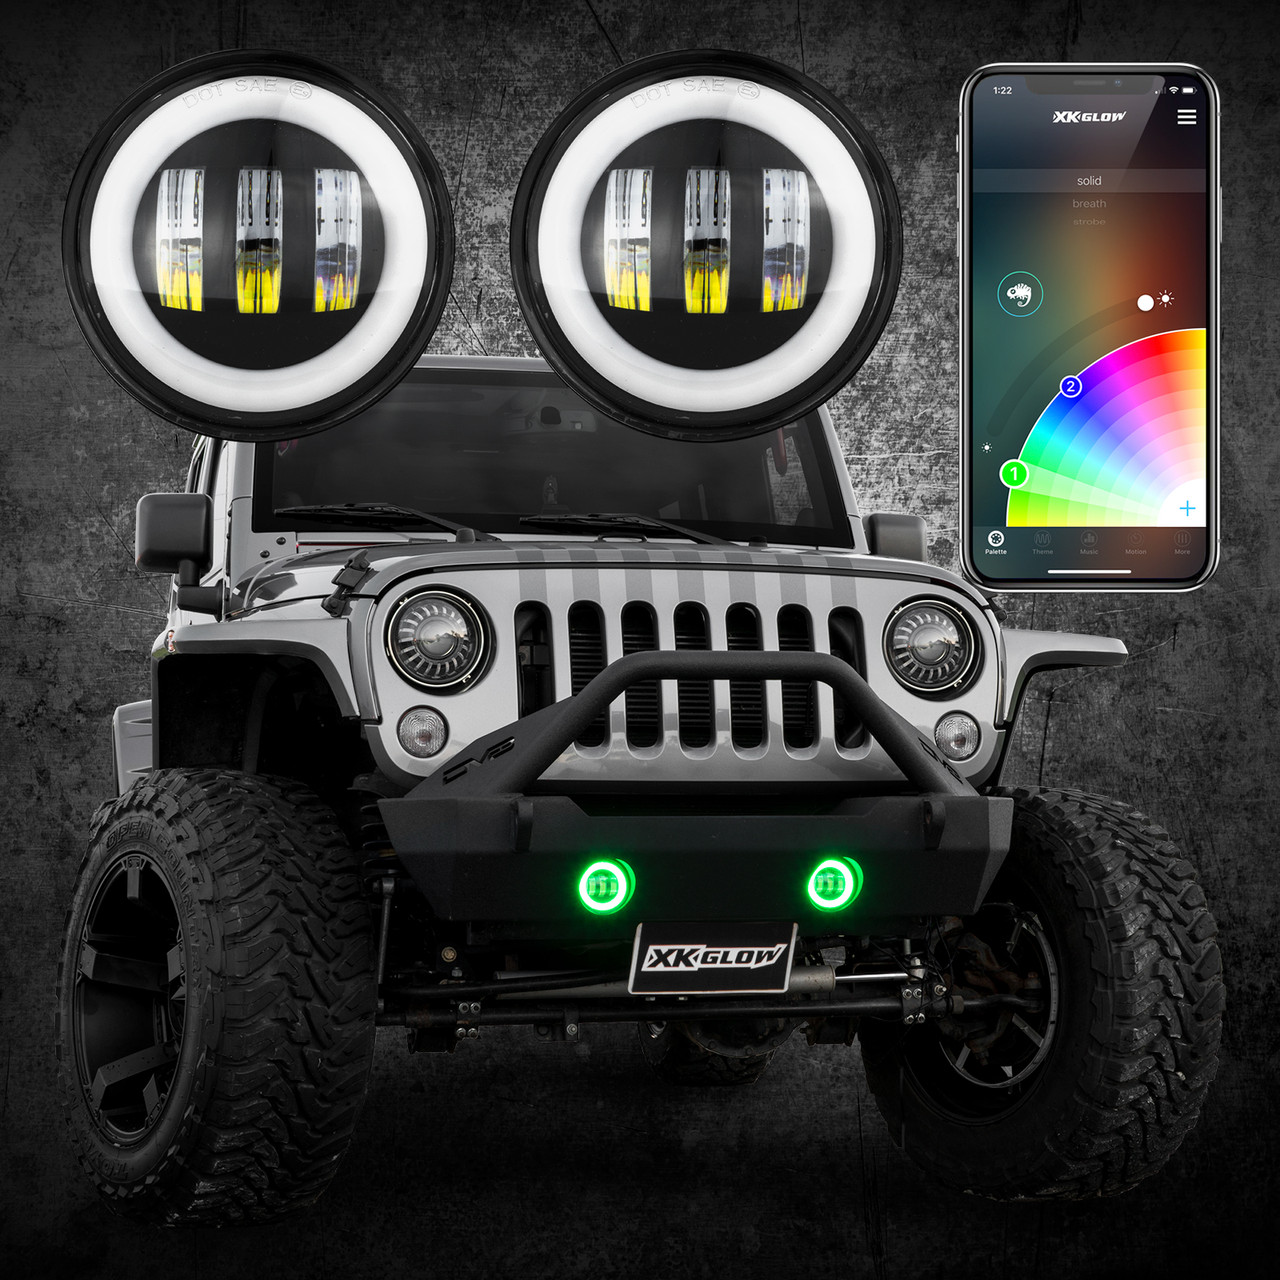 Jeep Wrangler Fog Lights >> Led Fog Light Kit For Jeep Wrangler Jk Xkchrome Smartphone App